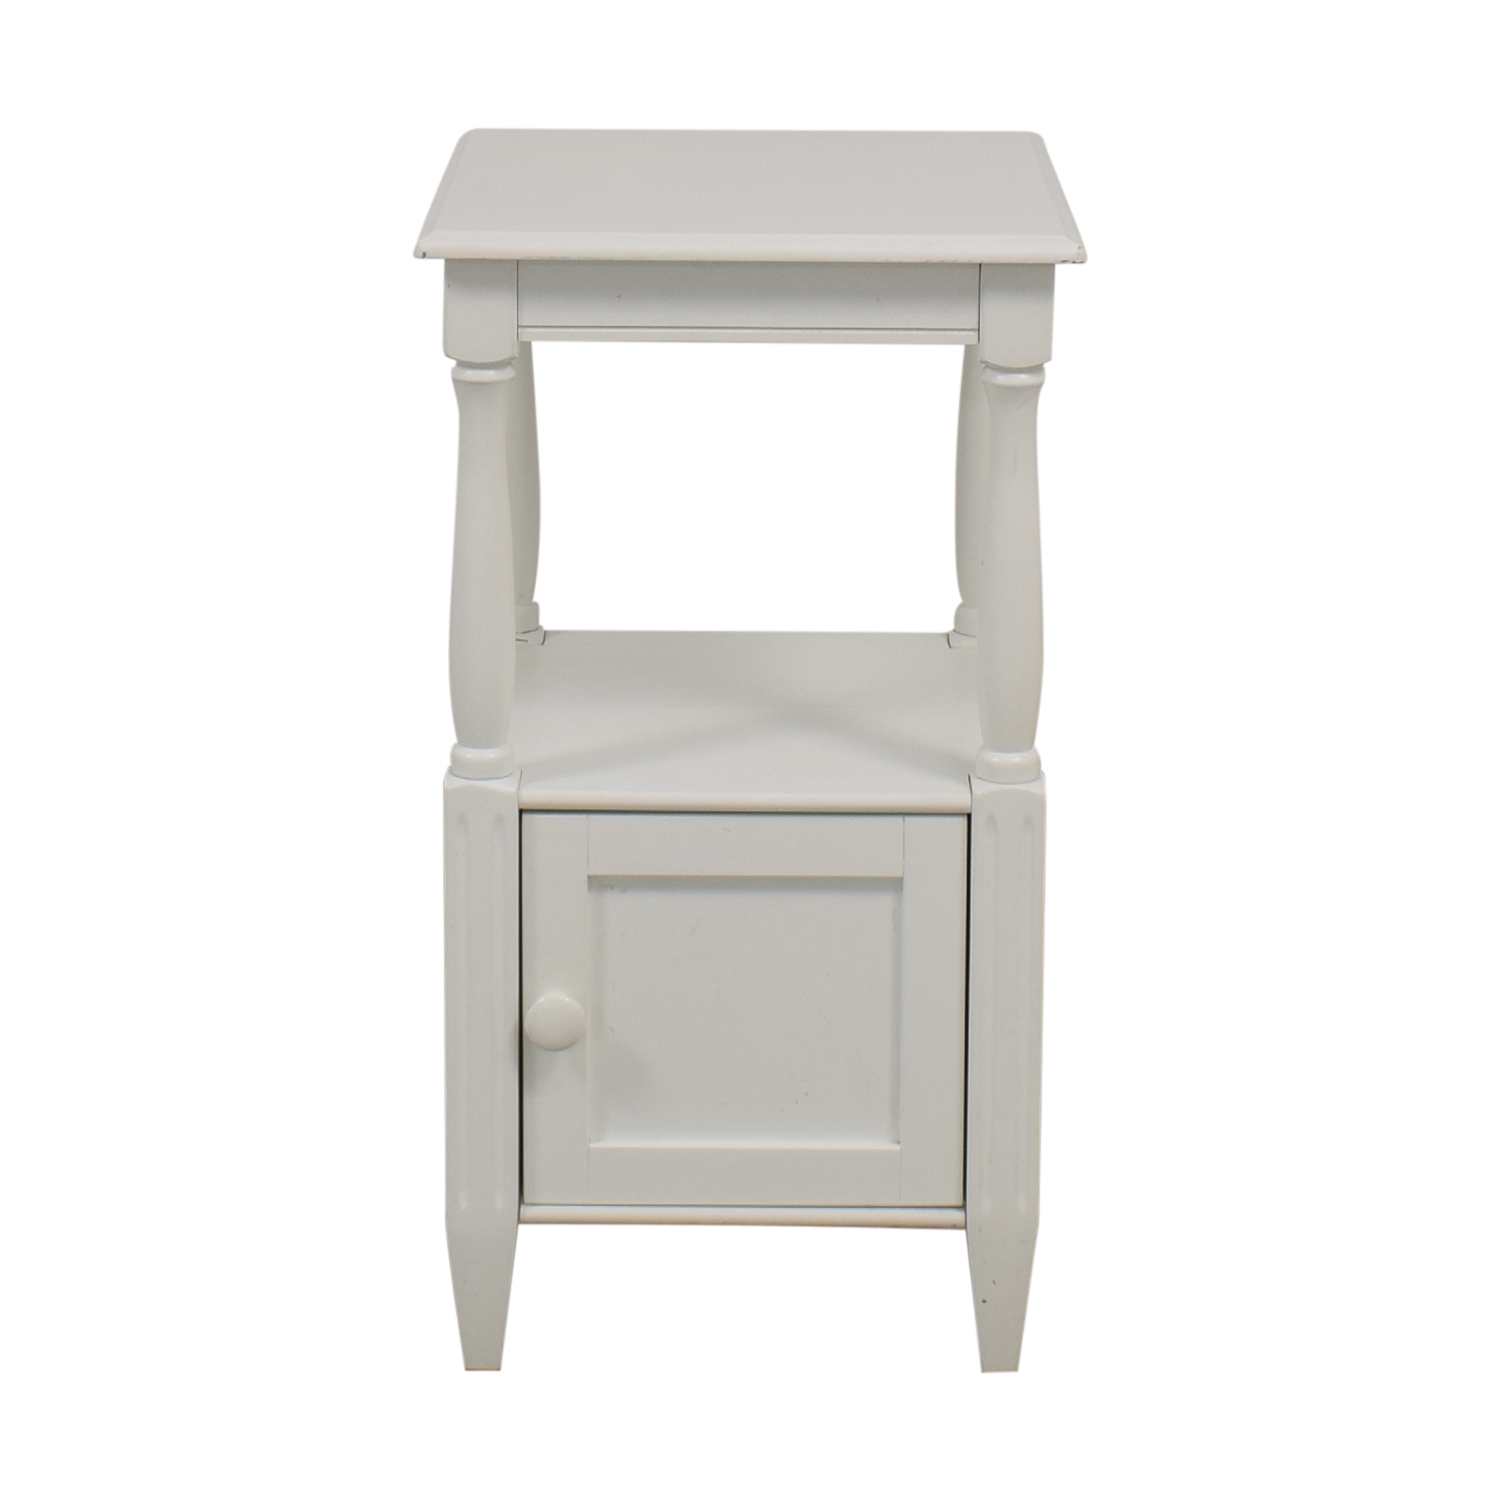 Pottery Barn Kids Pottery Barn Kids Night Stand nj